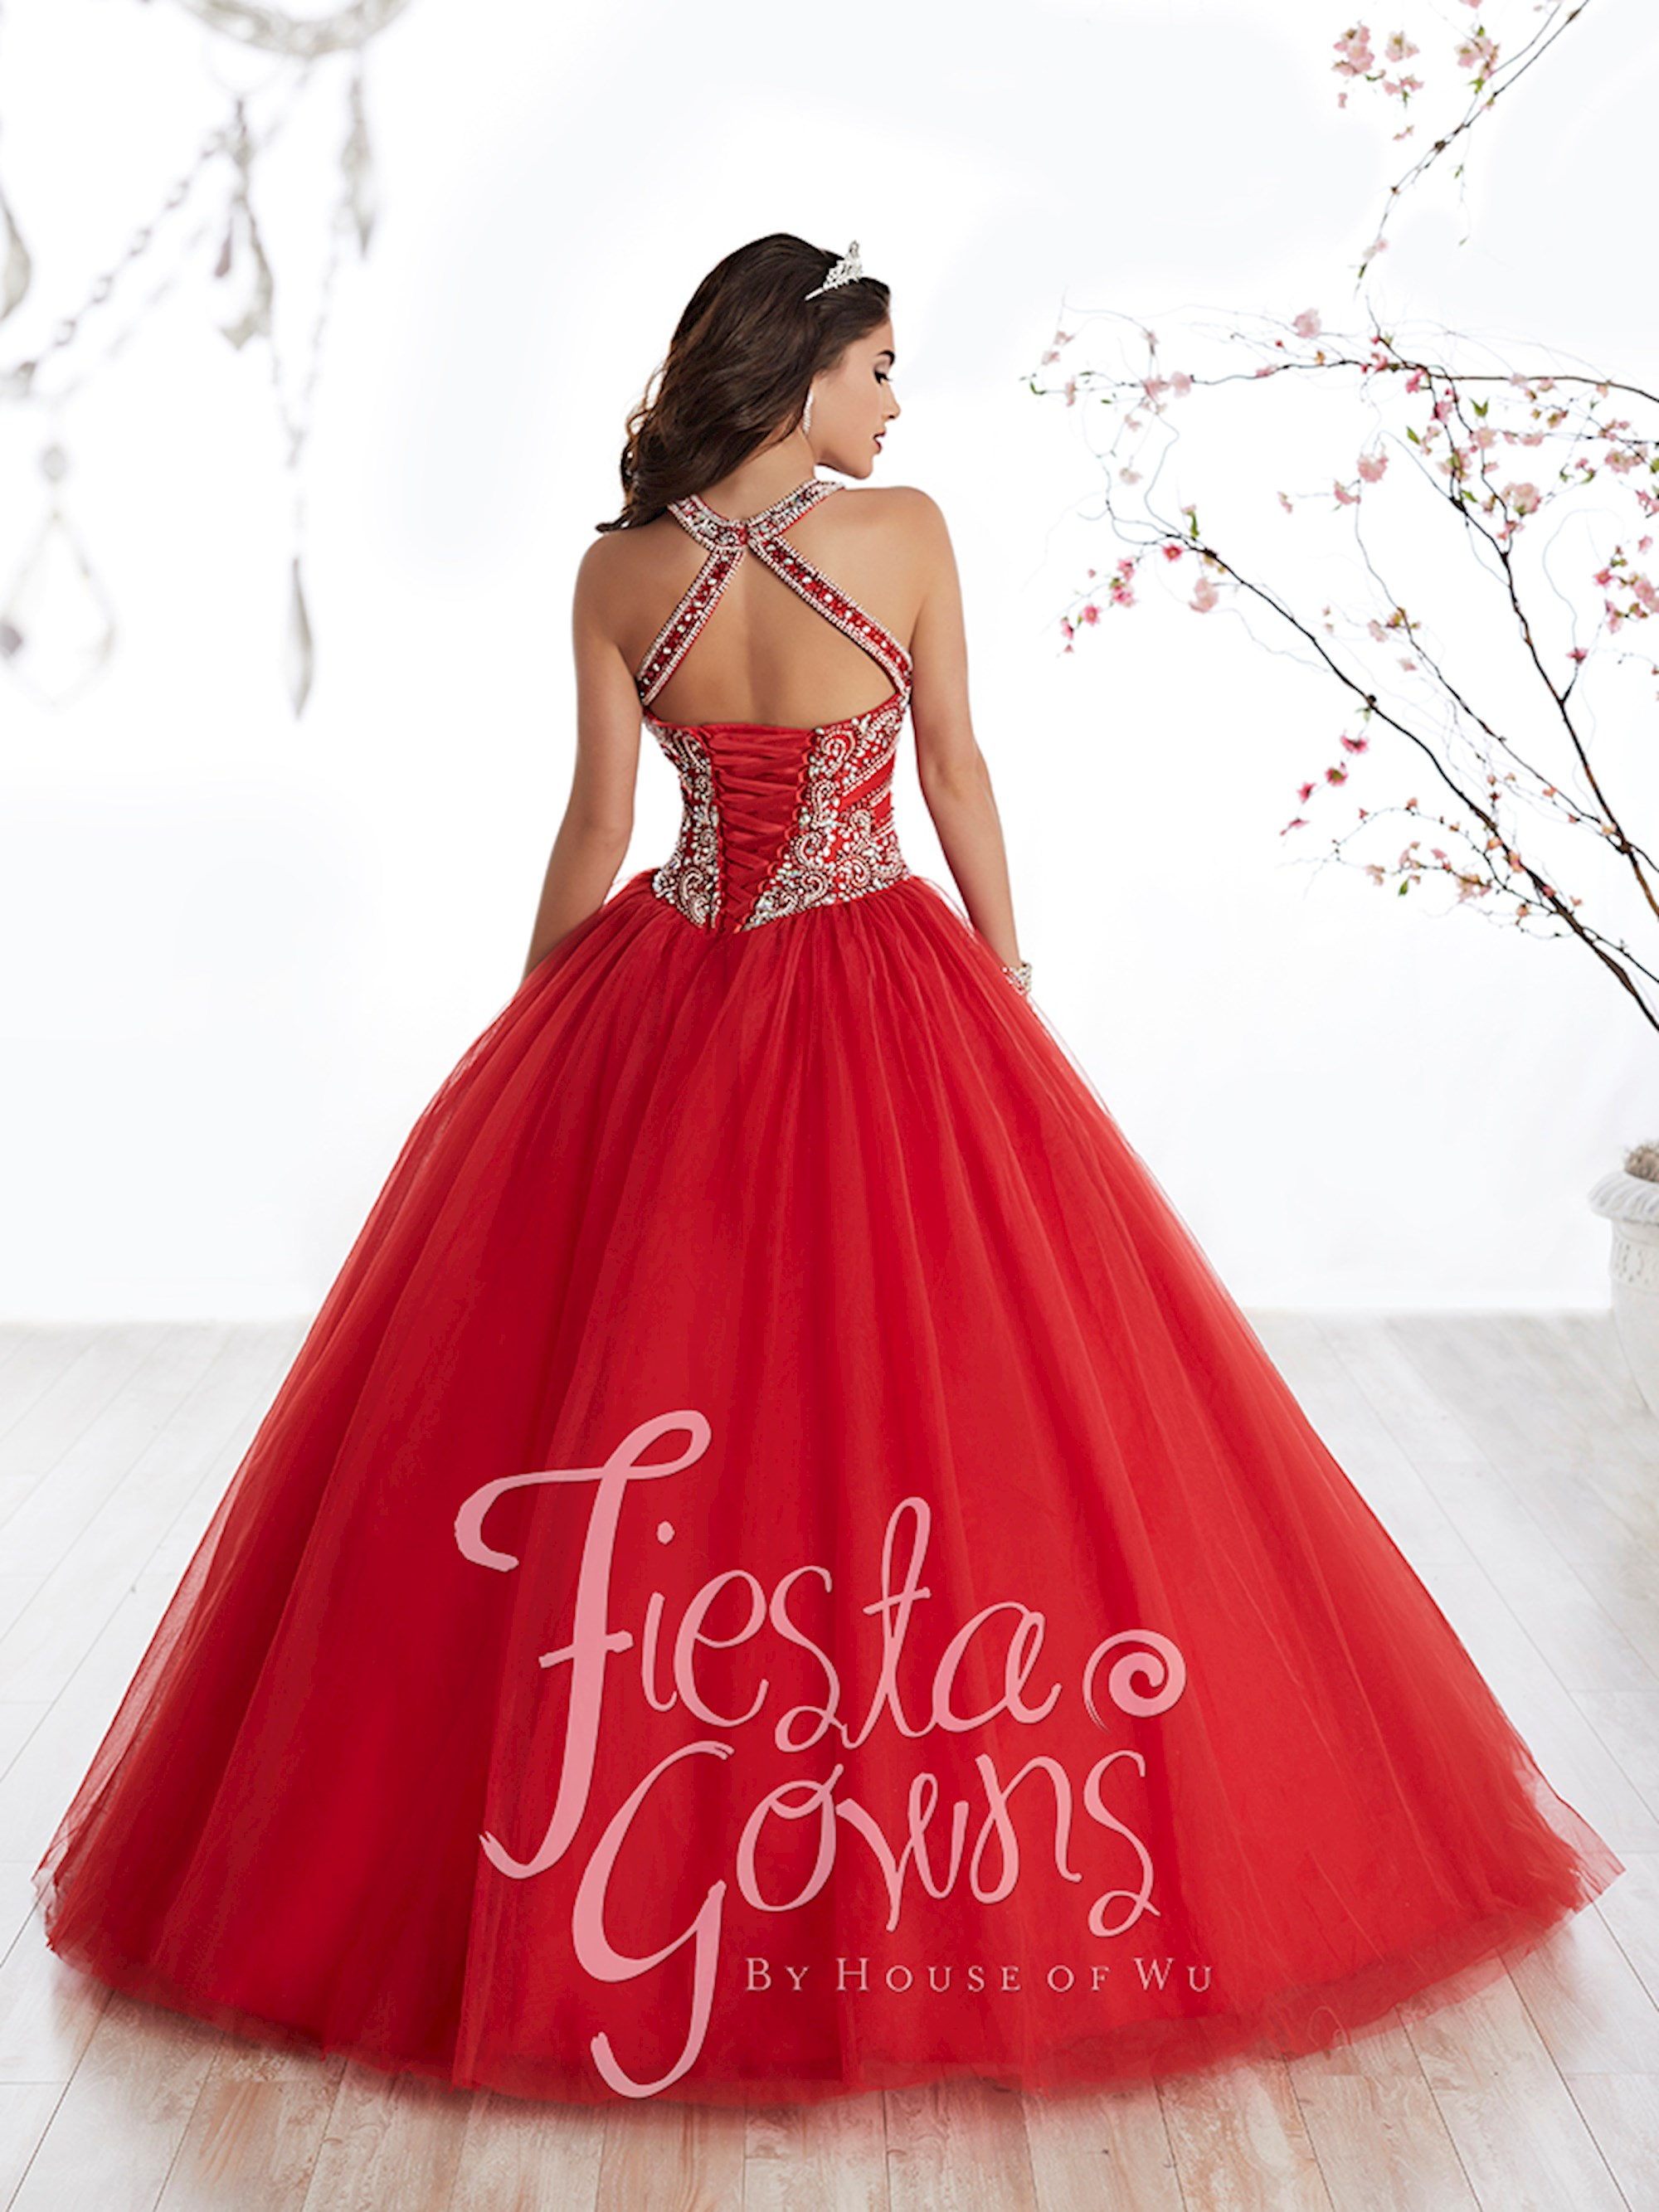 Fiesta Gowns - 56326 | Unique Lady Bridal and Prom